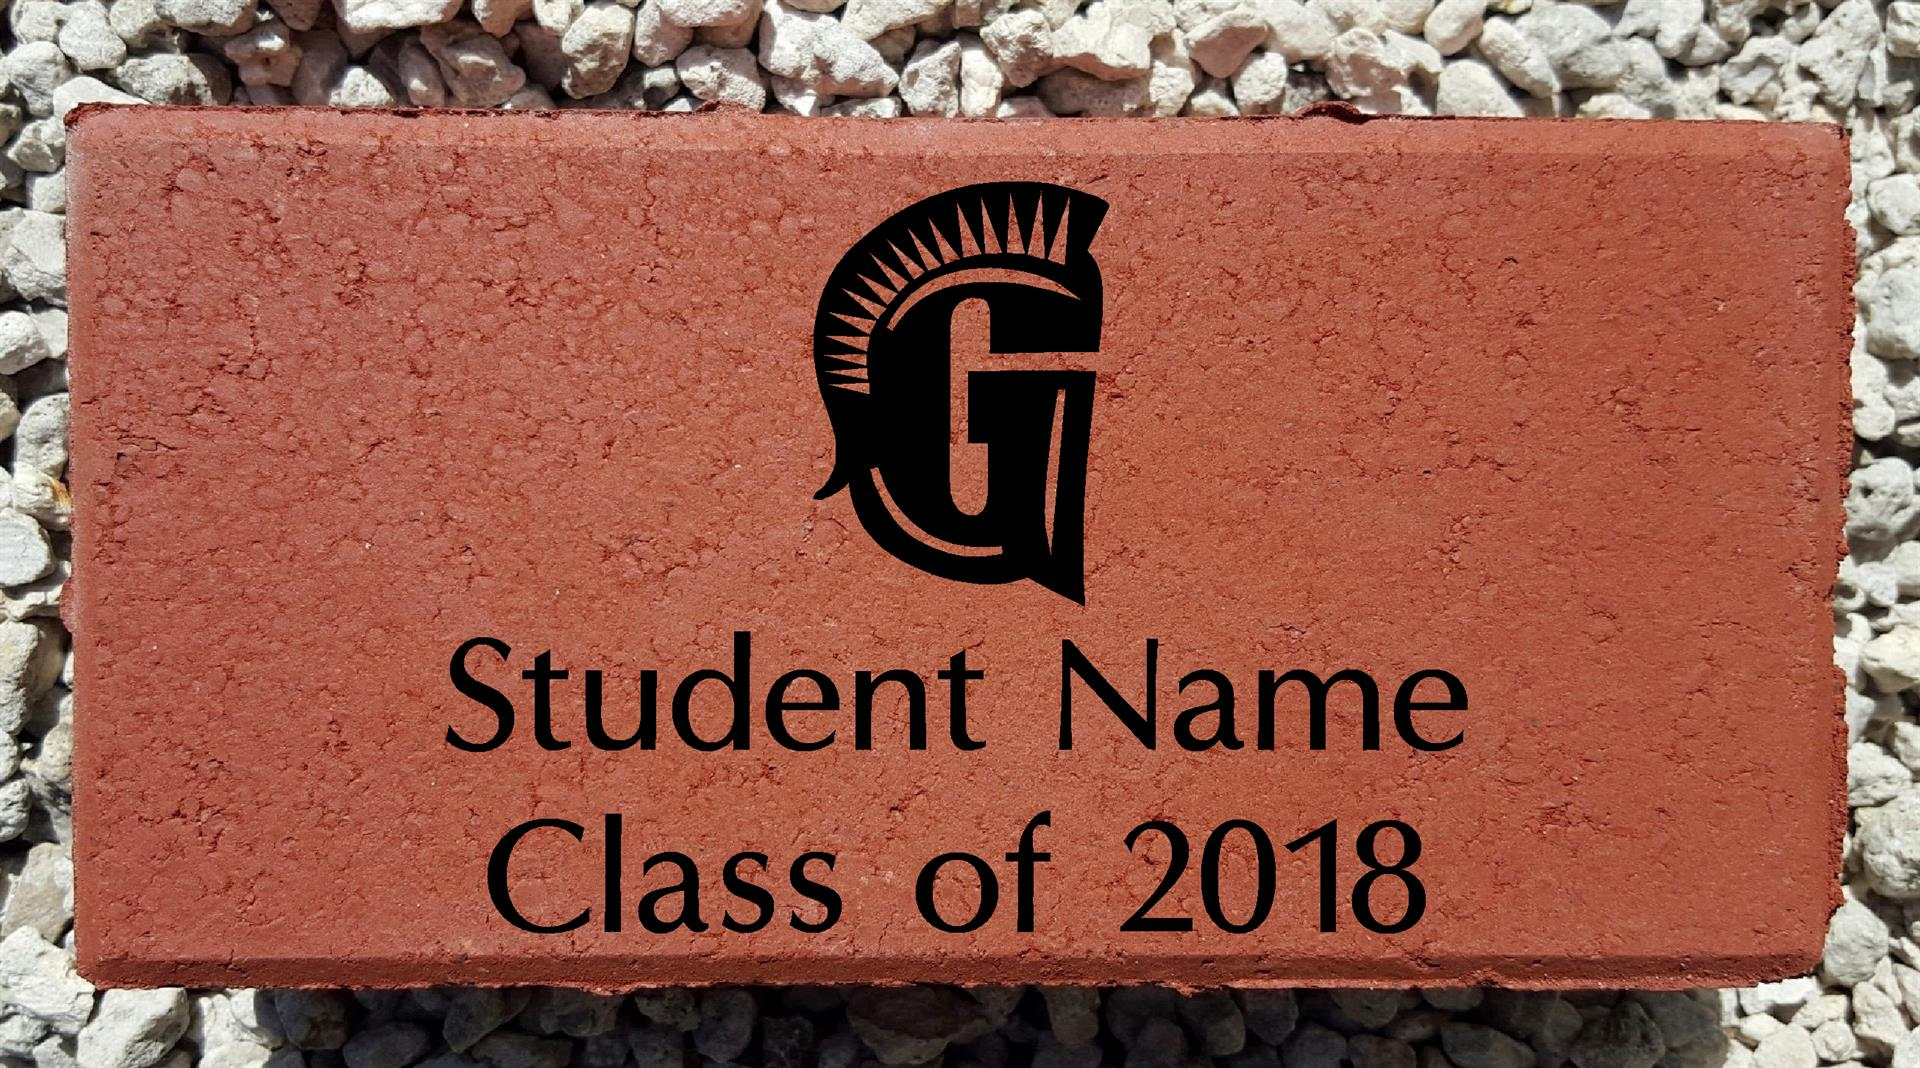 Student Name - Class of 2018 Brick